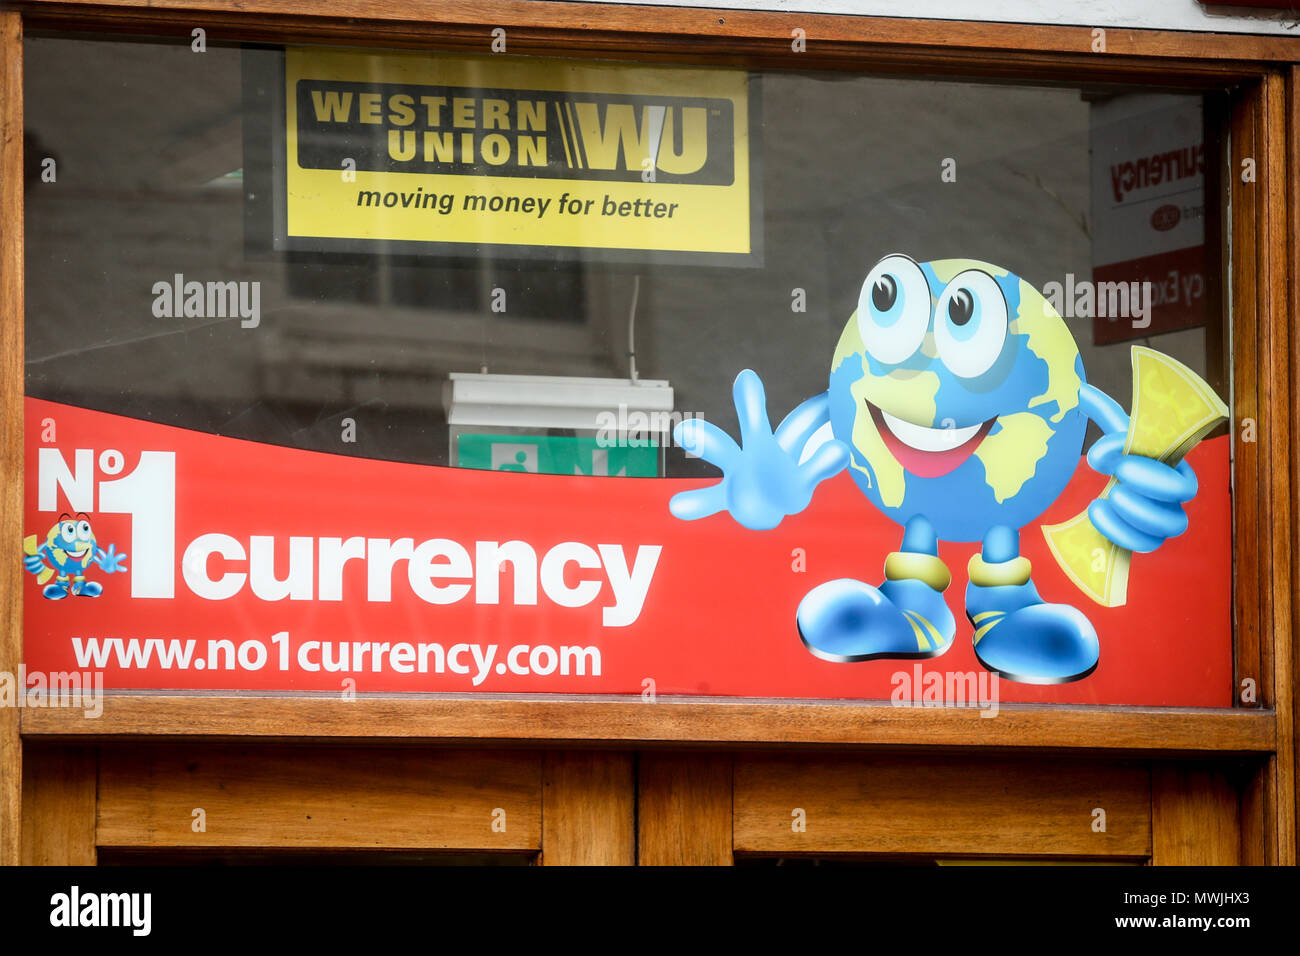 Number 1 Currency money shop in Winchester, Hampshire - Stock Image